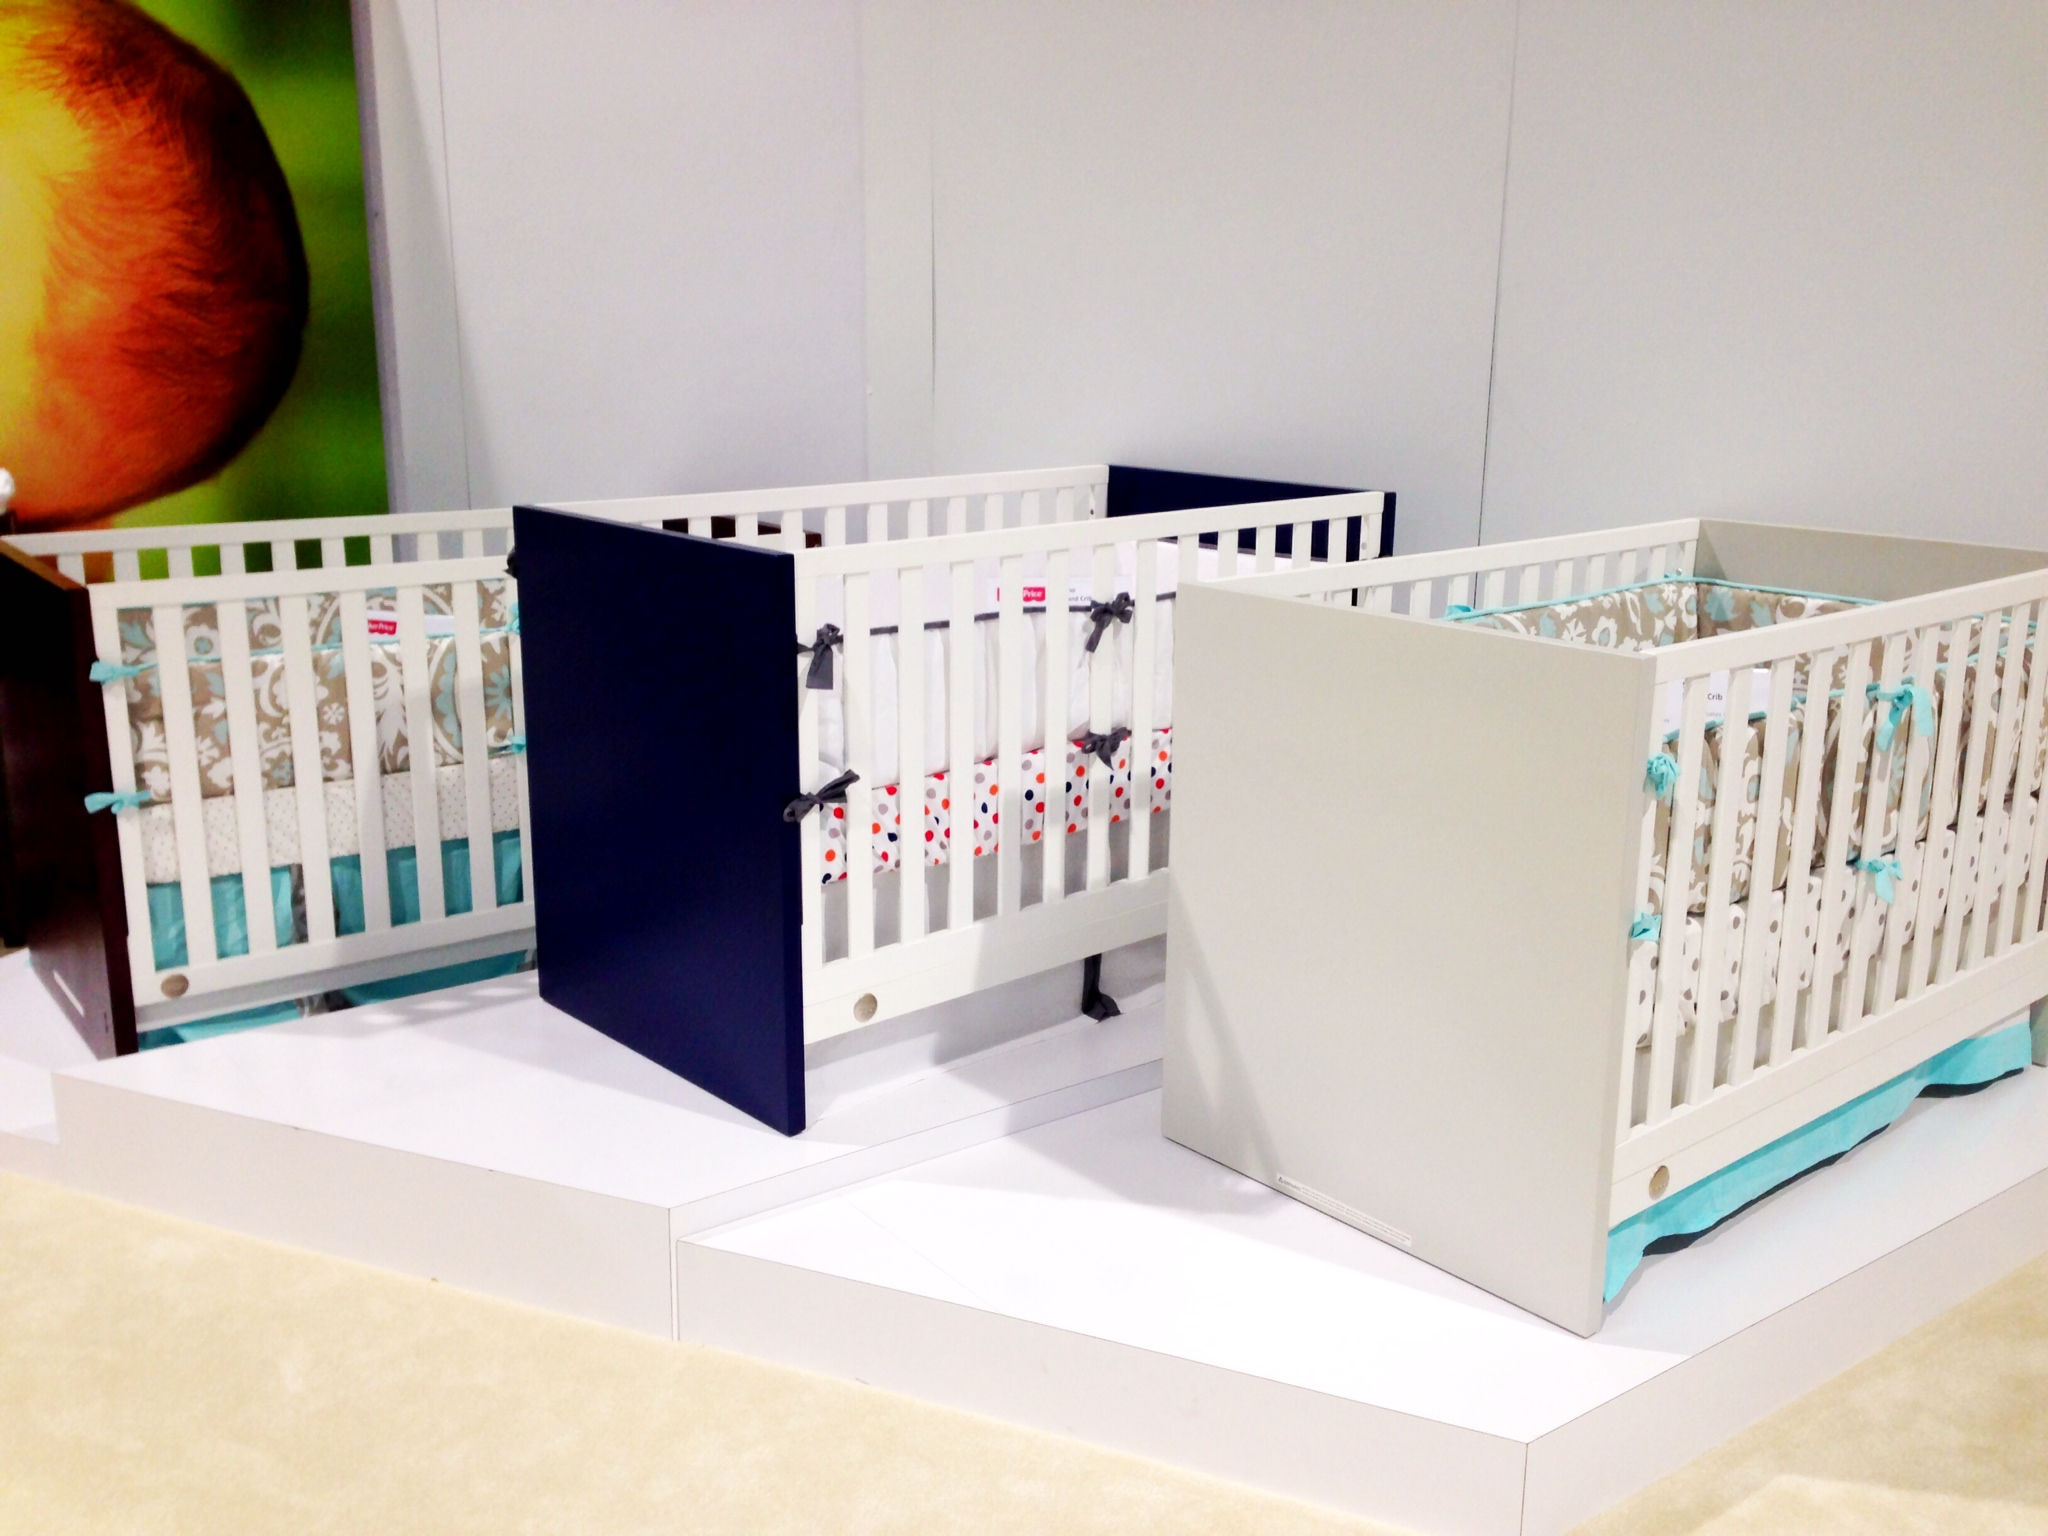 Modern Cribs from Bivionia with Low Price Point